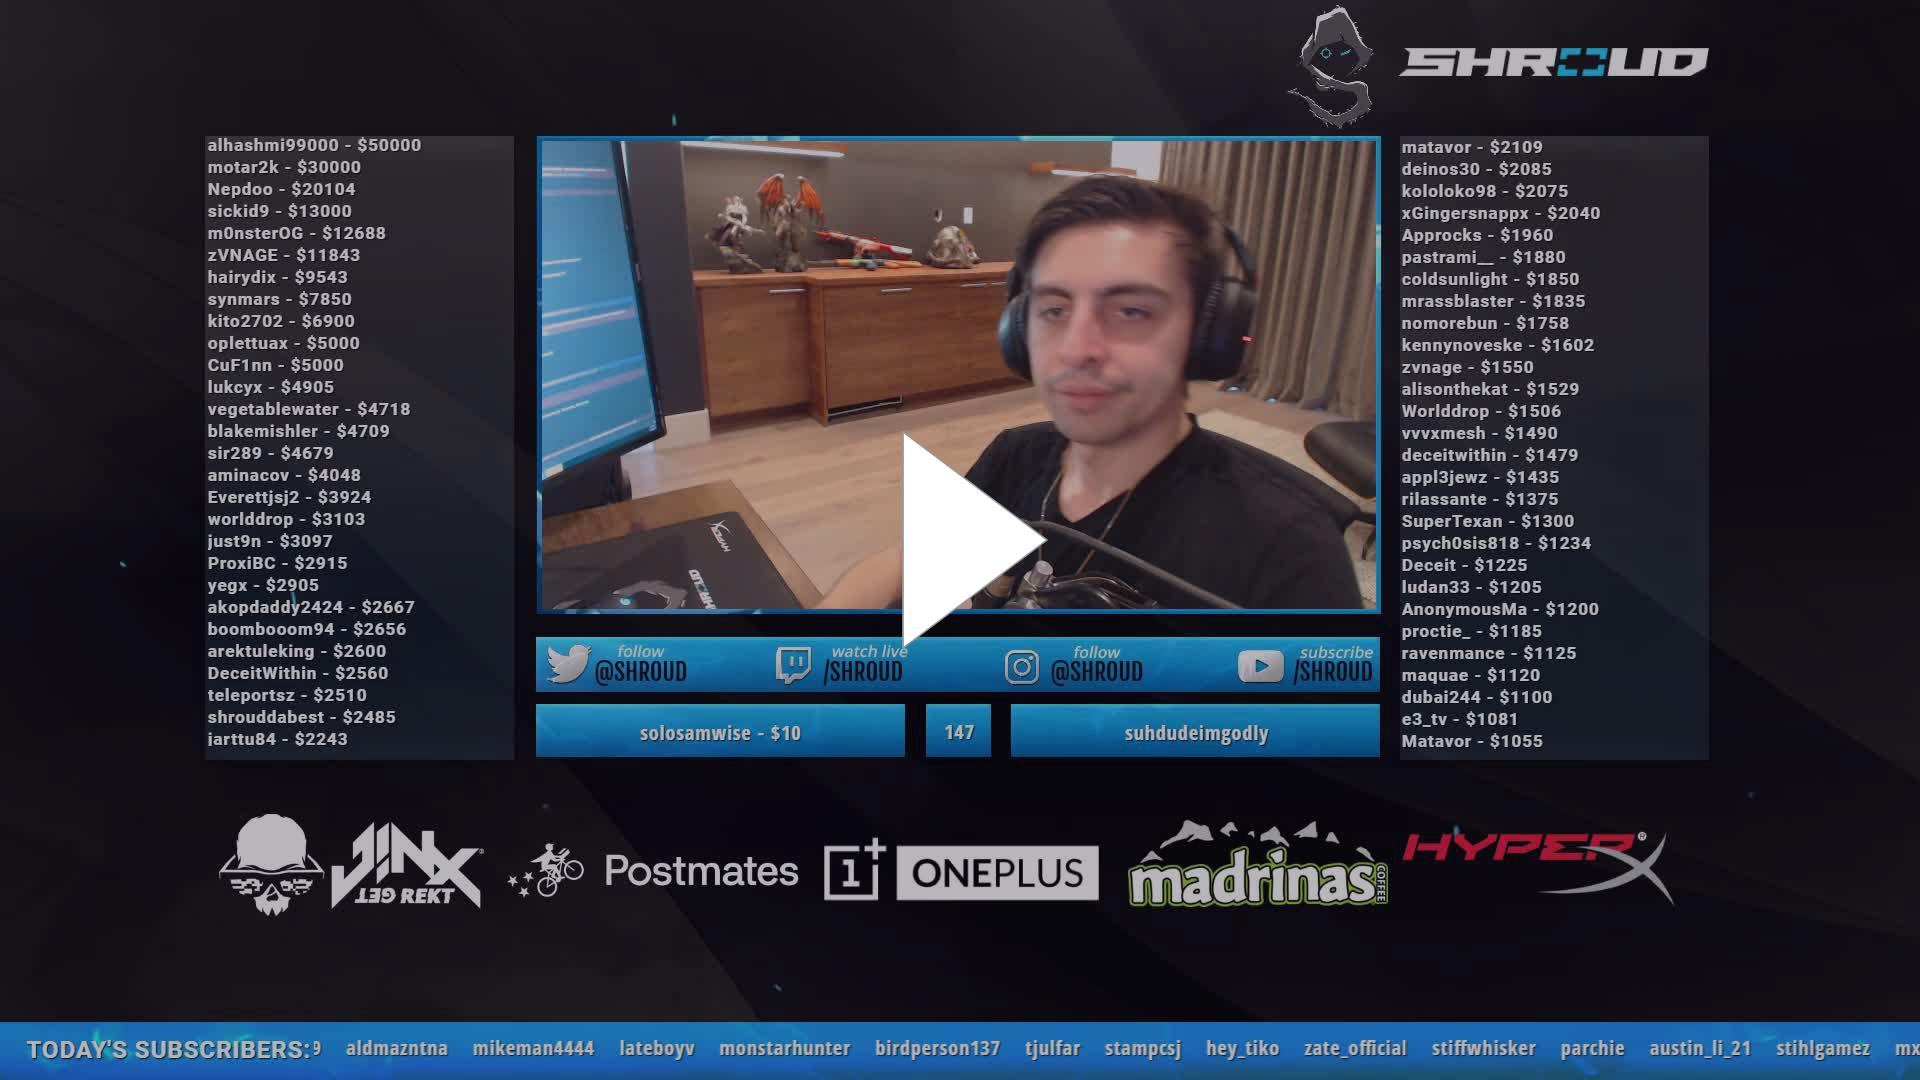 shroud - Gotta google that word - Twitch